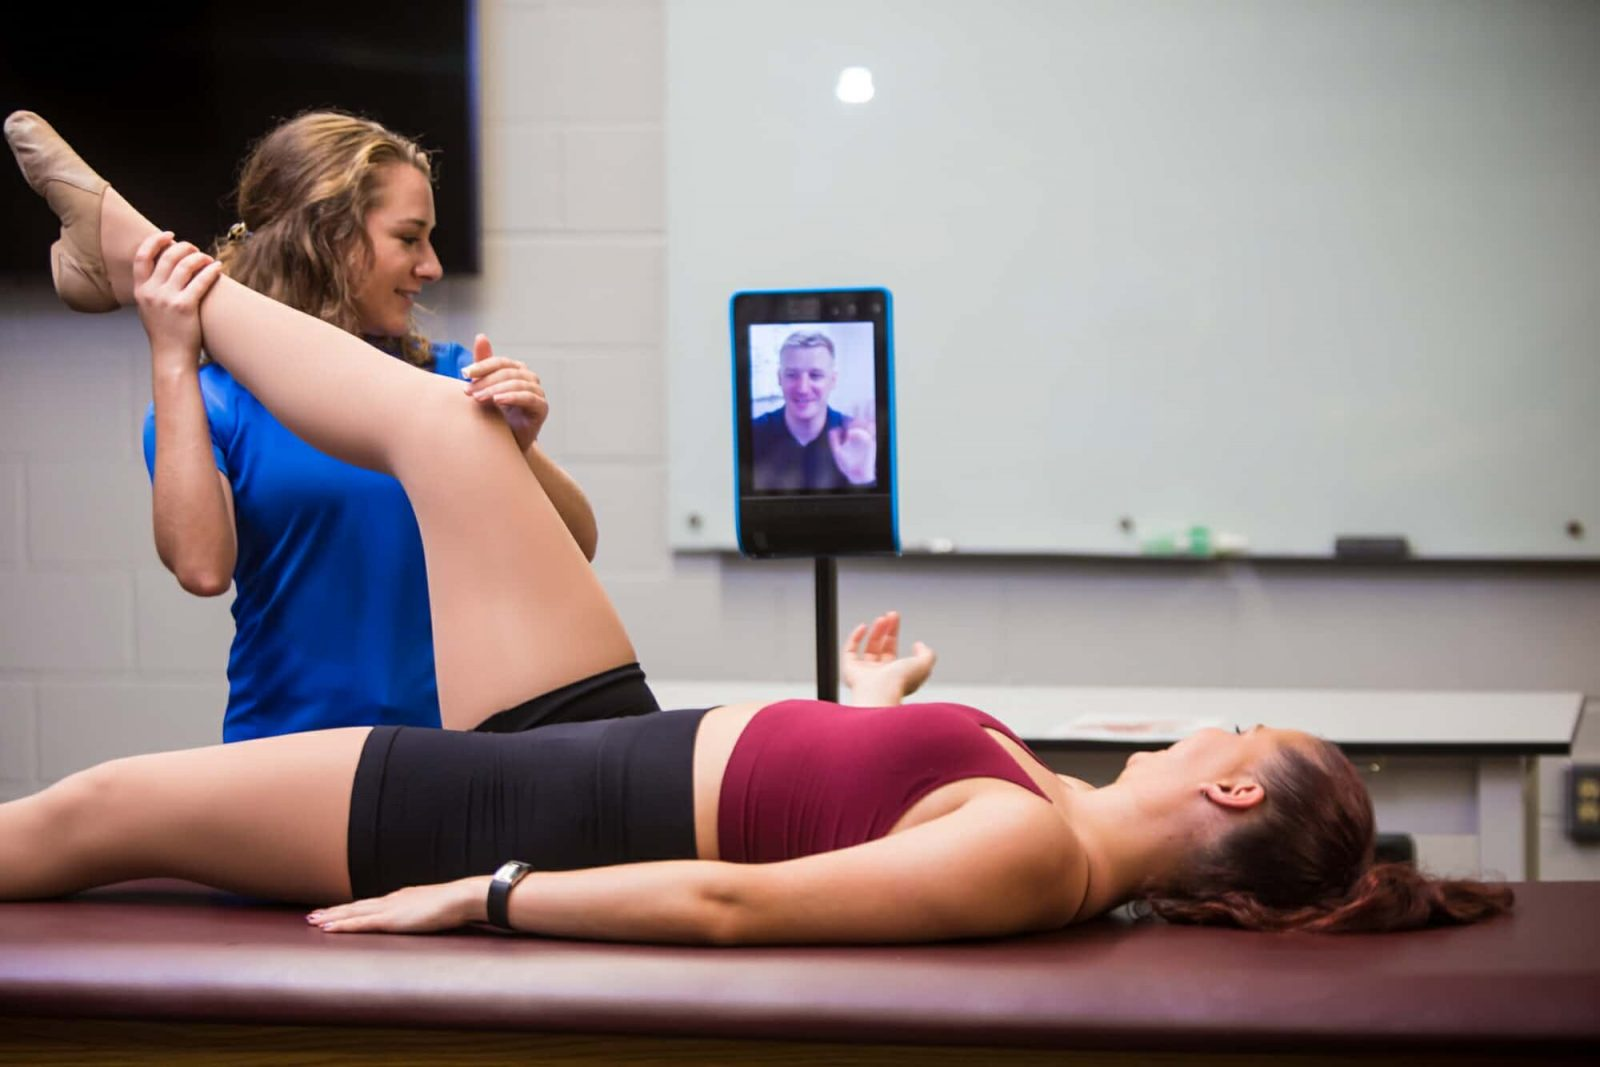 Athletic Training With Remote Viewer